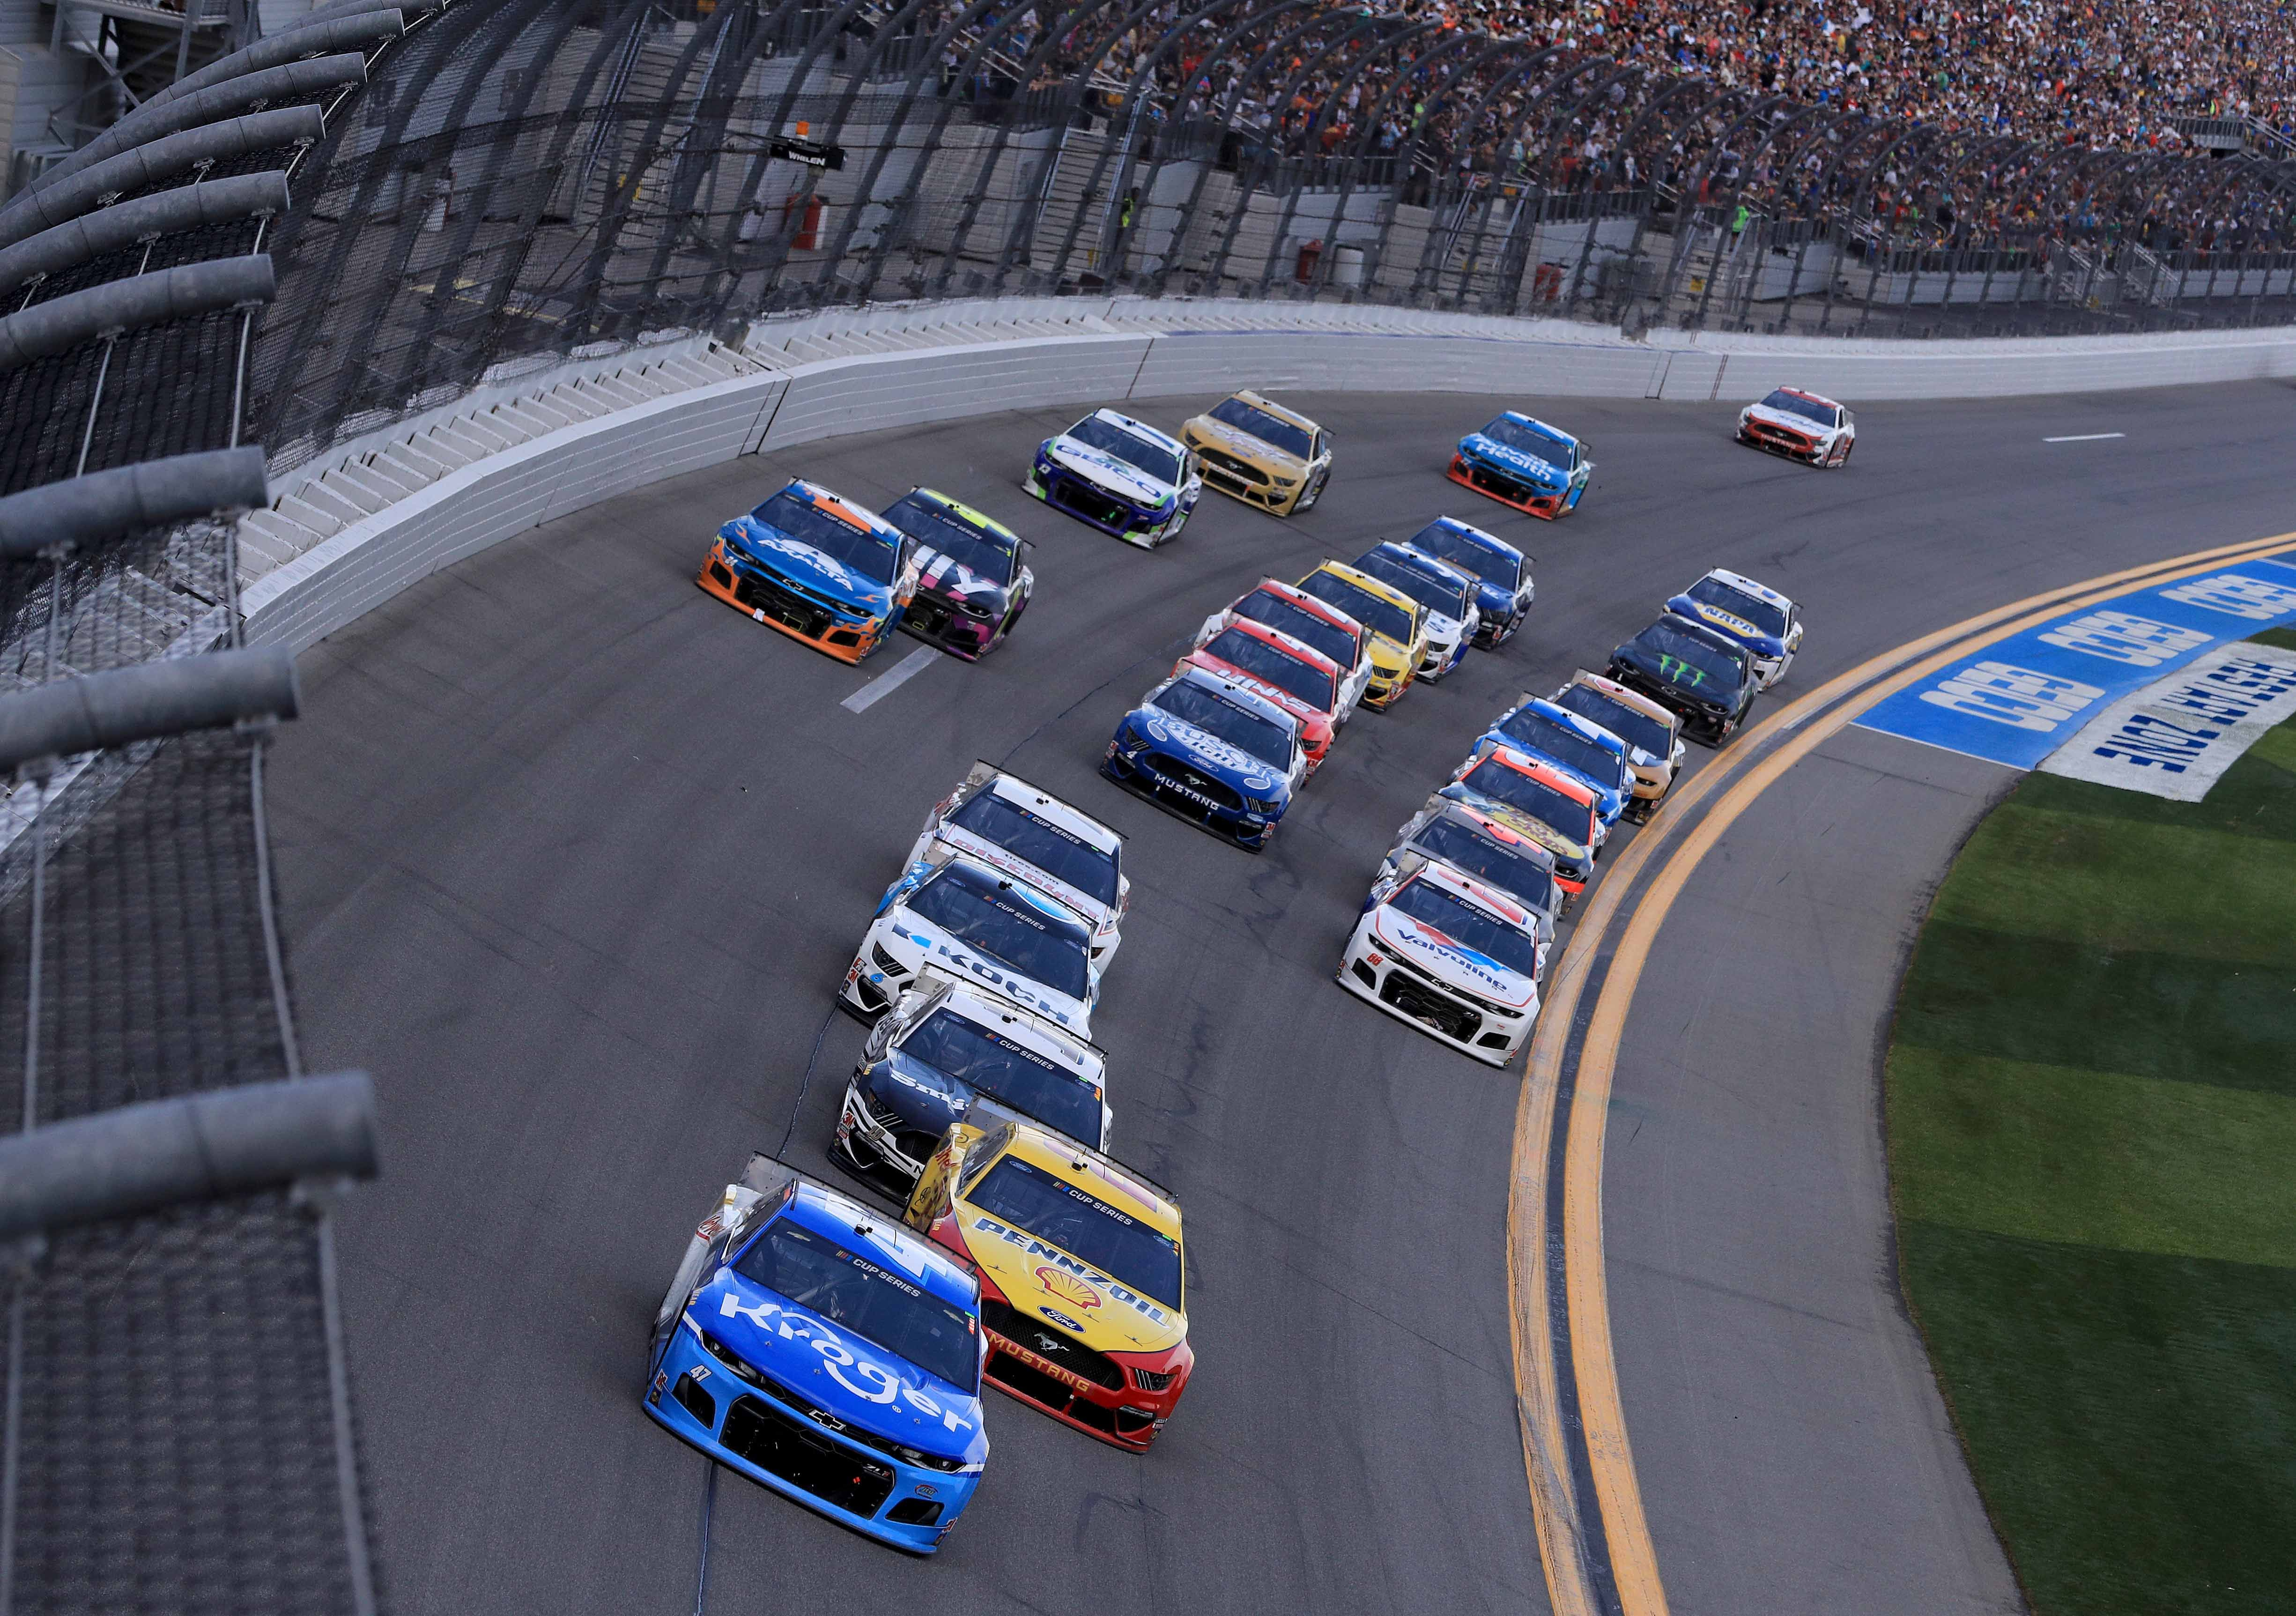 Dale Earnhardt Jr Had To Go Racing News Co Dale Earnhardt Jr Dale Earnhardt Nascar Shop